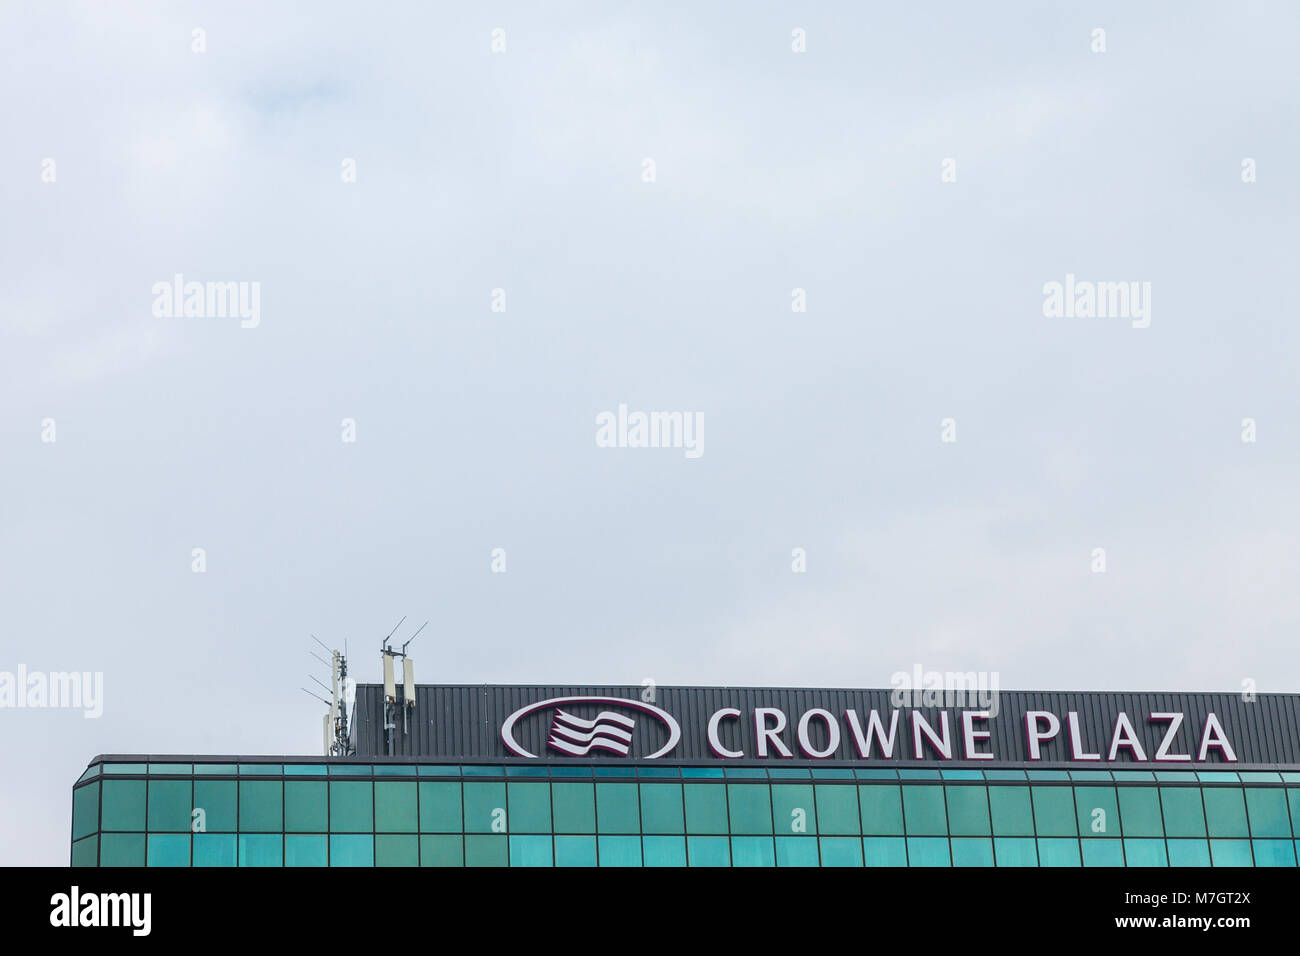 BELGRADE, SERBIA - MARCH 2, 2018: Crowne Plaza logo on their main hotel in Serbia. Crowne Plaza is a worldwide brand, - Stock Image